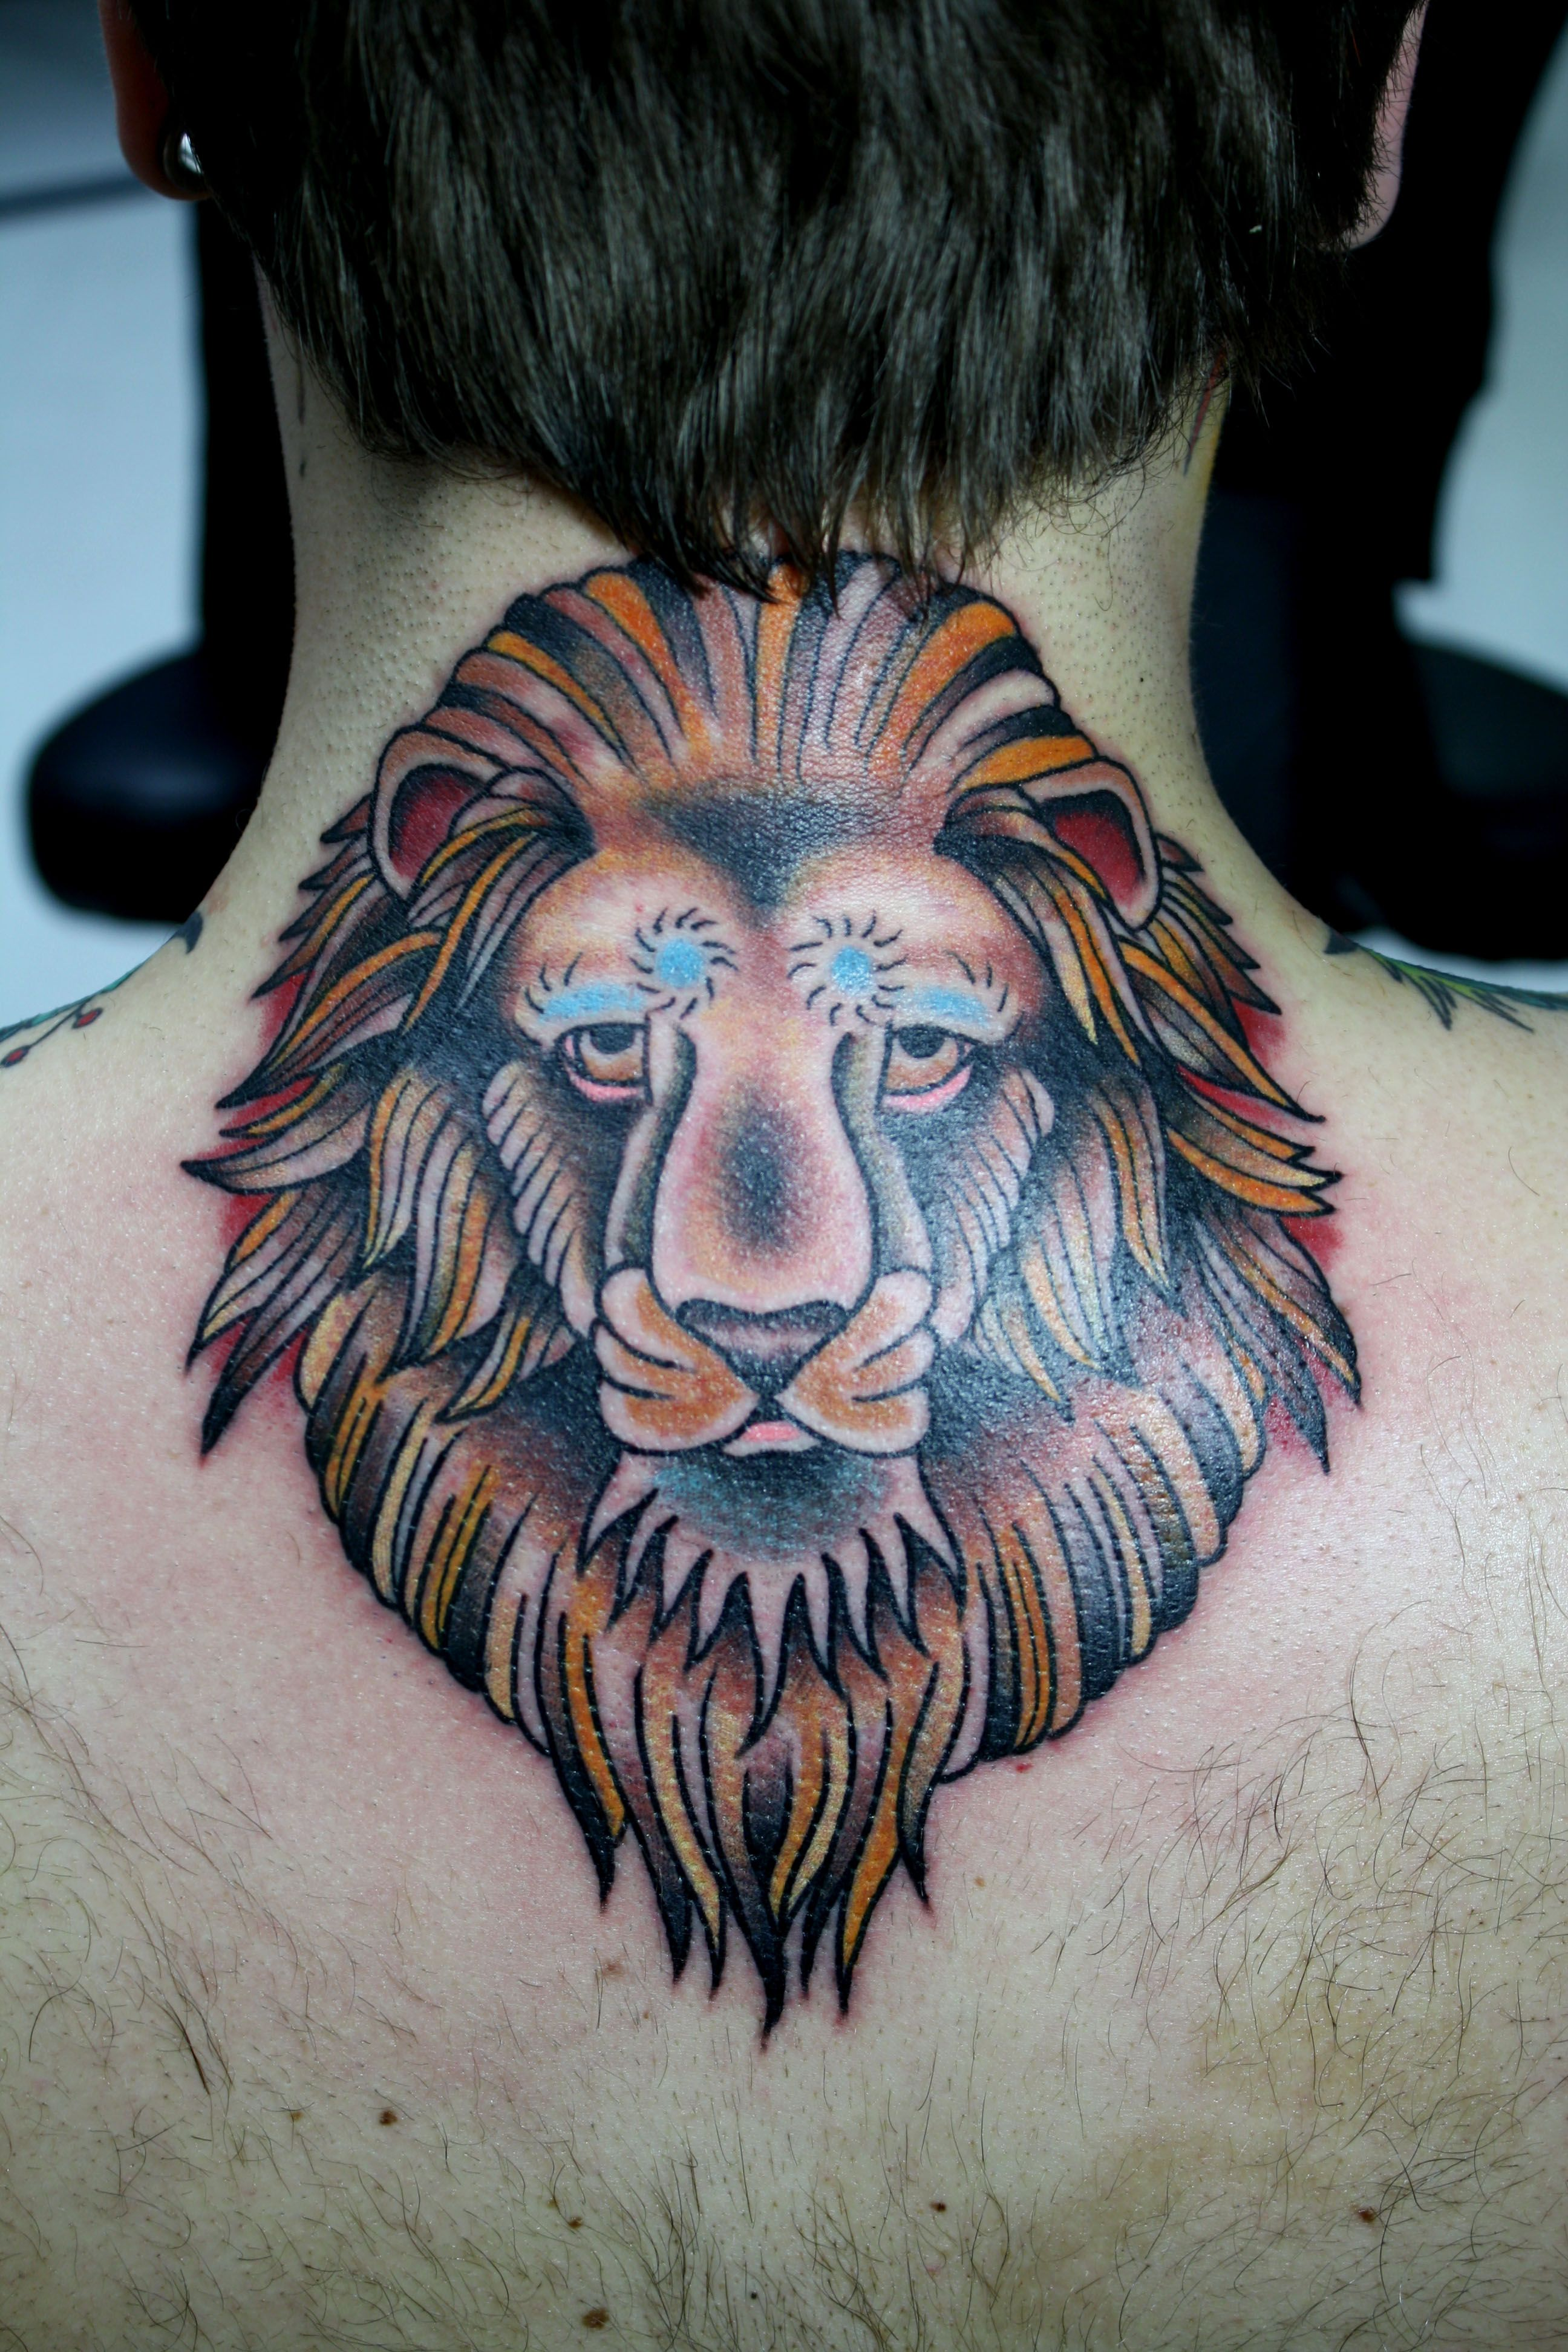 Traditional lion tattoo traditional lion tattoo trad lion traditional lion tattoo flash lion tattoos designs ideas and meaning buycottarizona Gallery